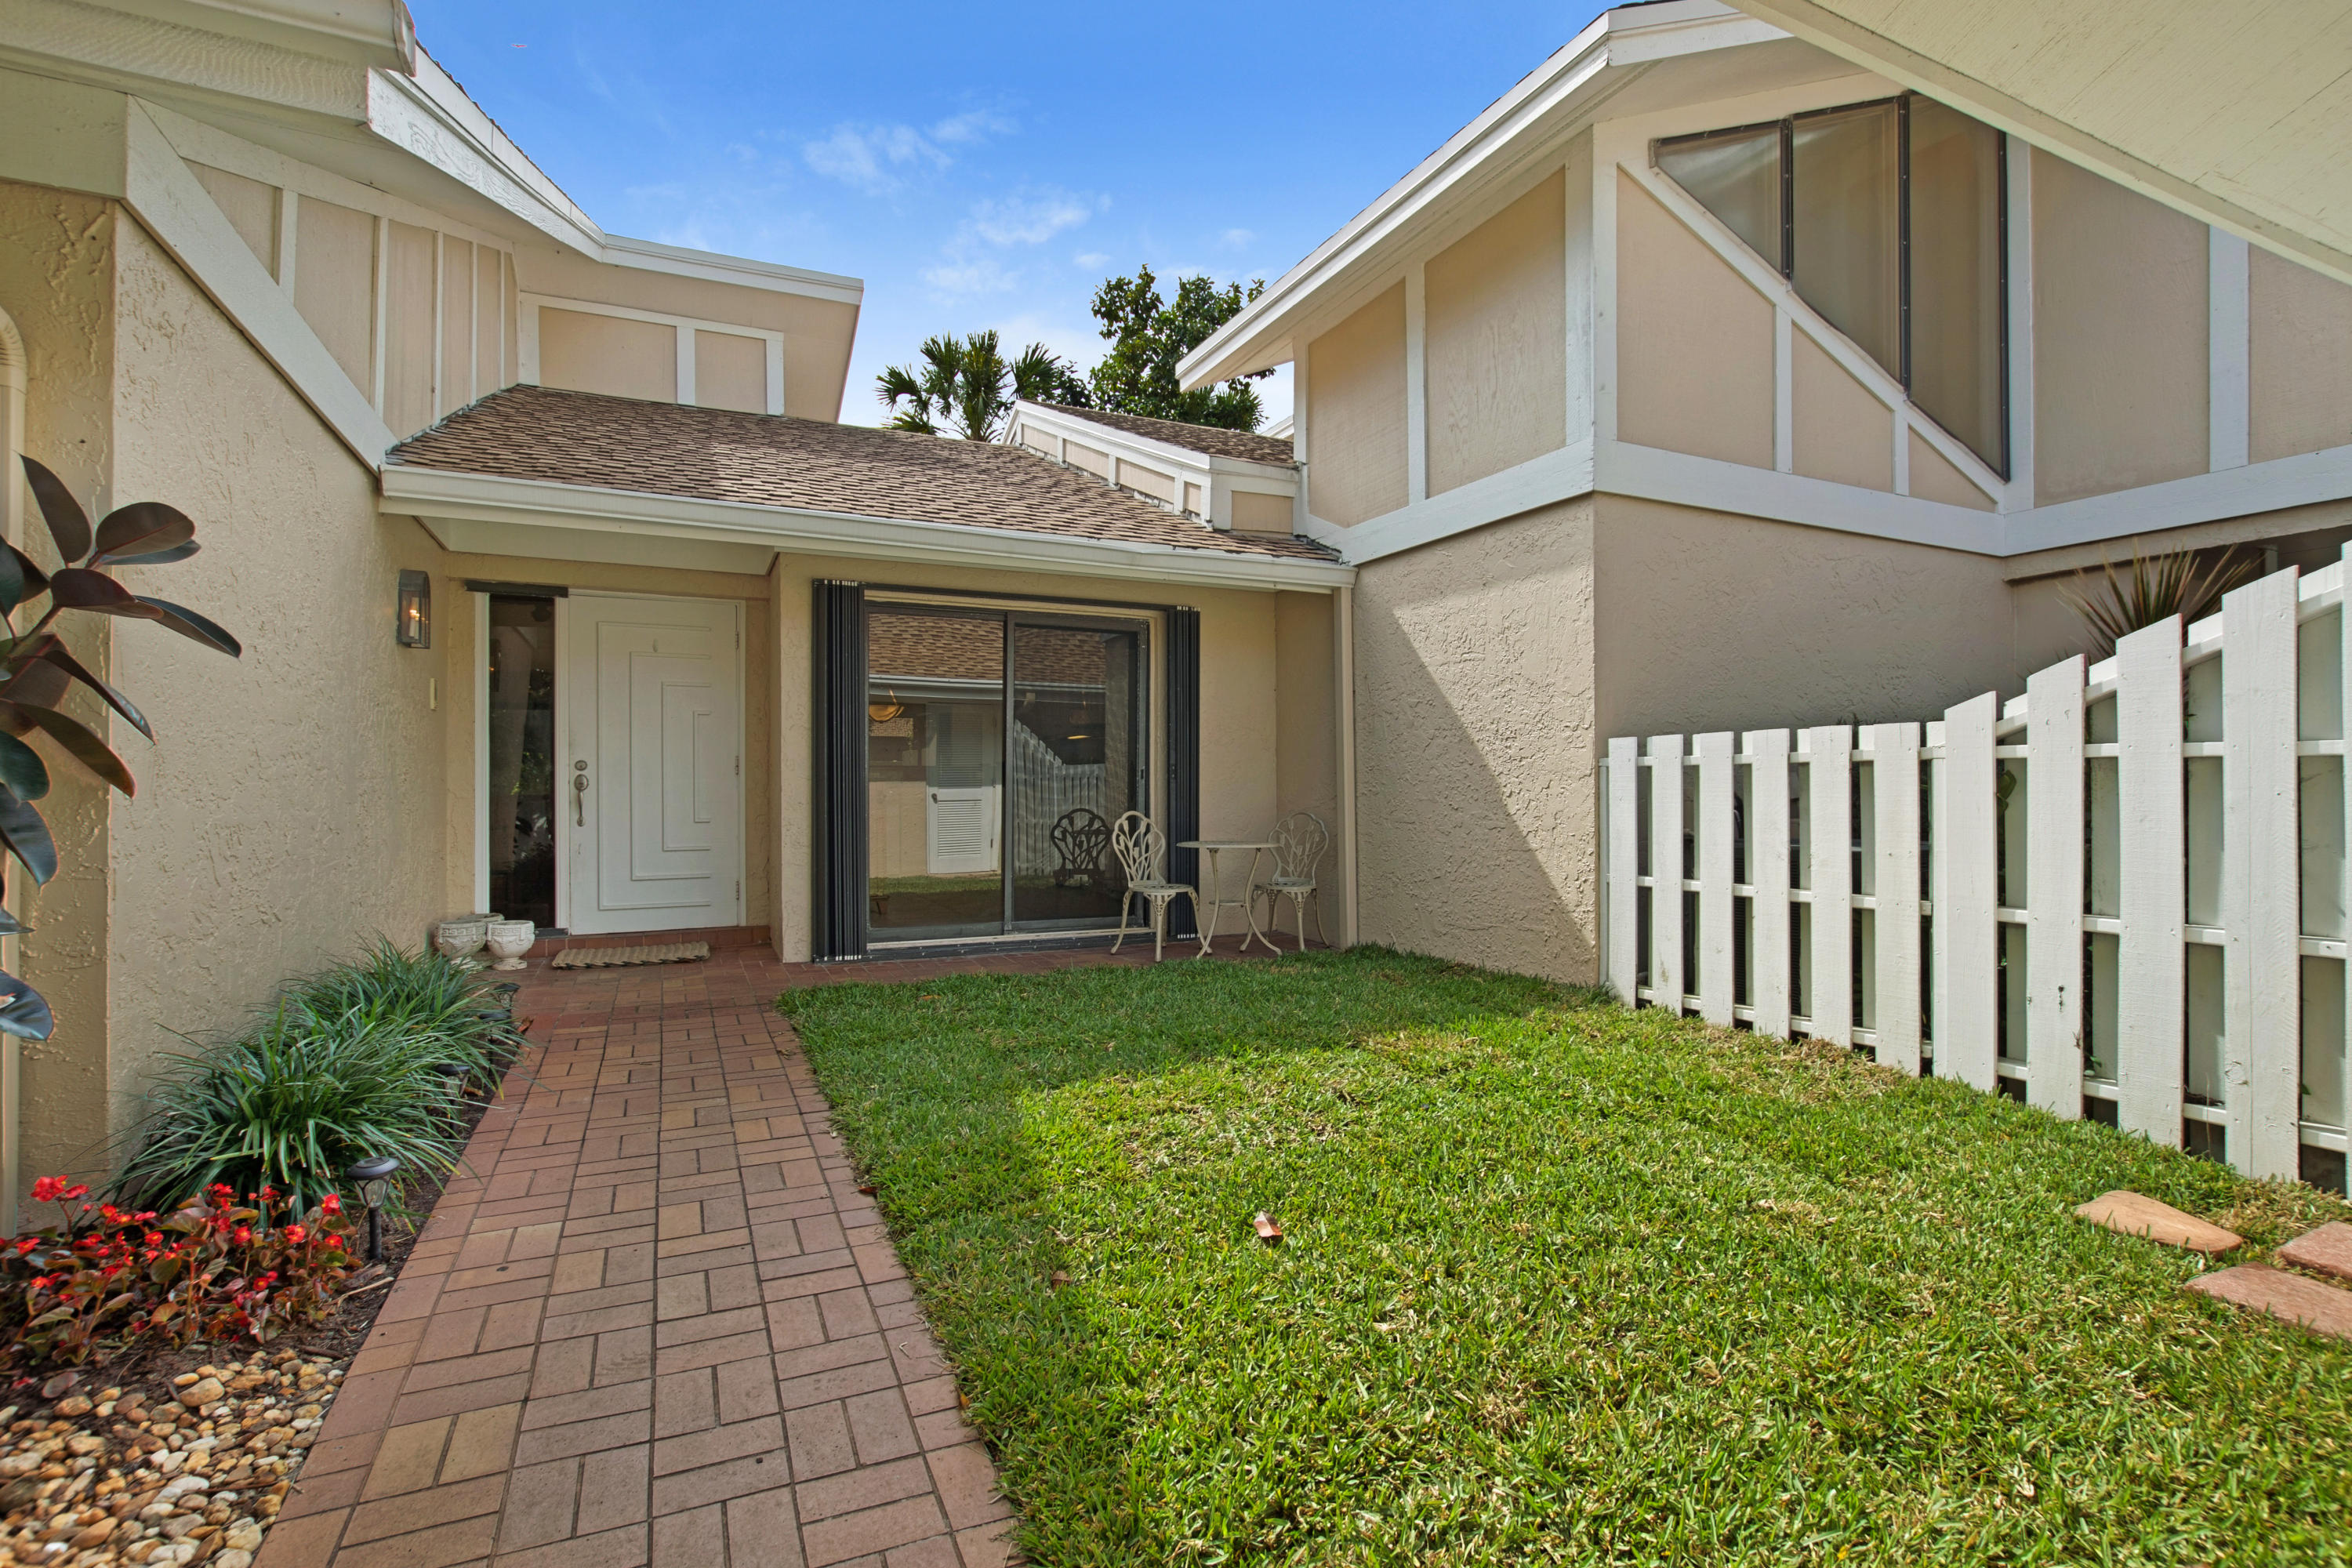 3680 Cape Pointe Circle, Jupiter, Florida 33477, 2 Bedrooms Bedrooms, ,2 BathroomsBathrooms,A,Villa,Cape Pointe,RX-10504715